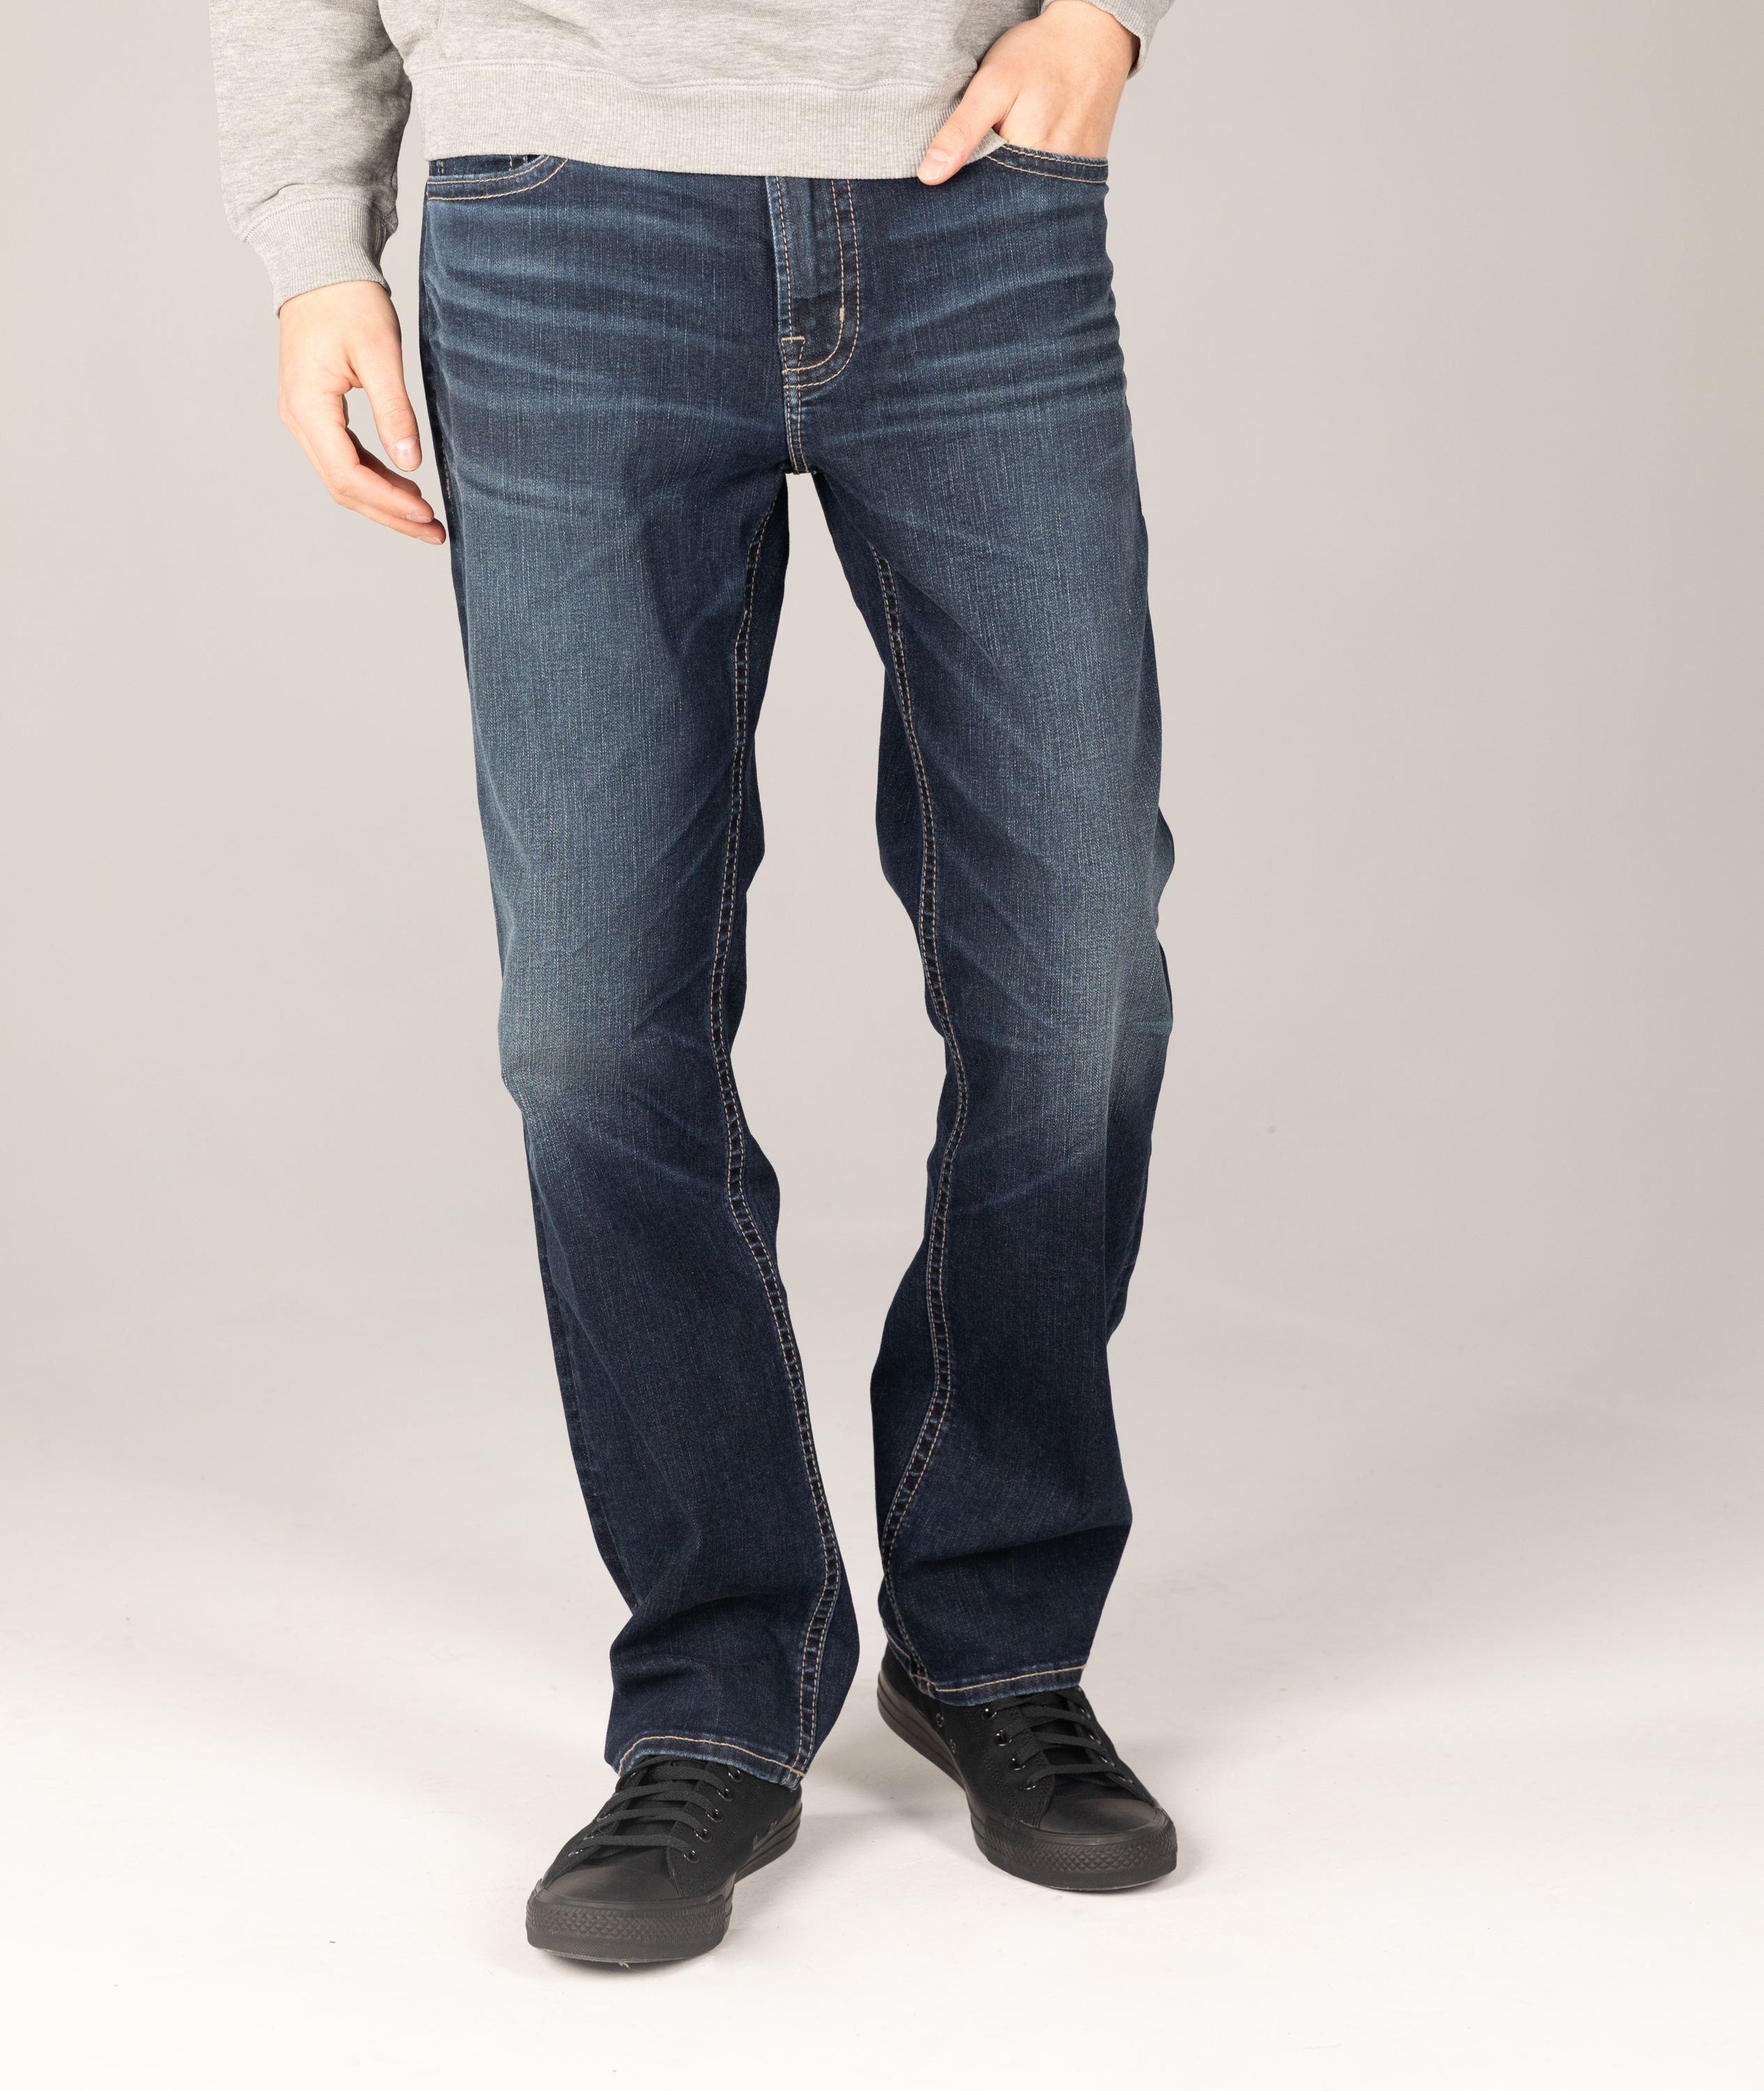 Silver Jeans Grayson Easy Fit Straight Leg Jeans